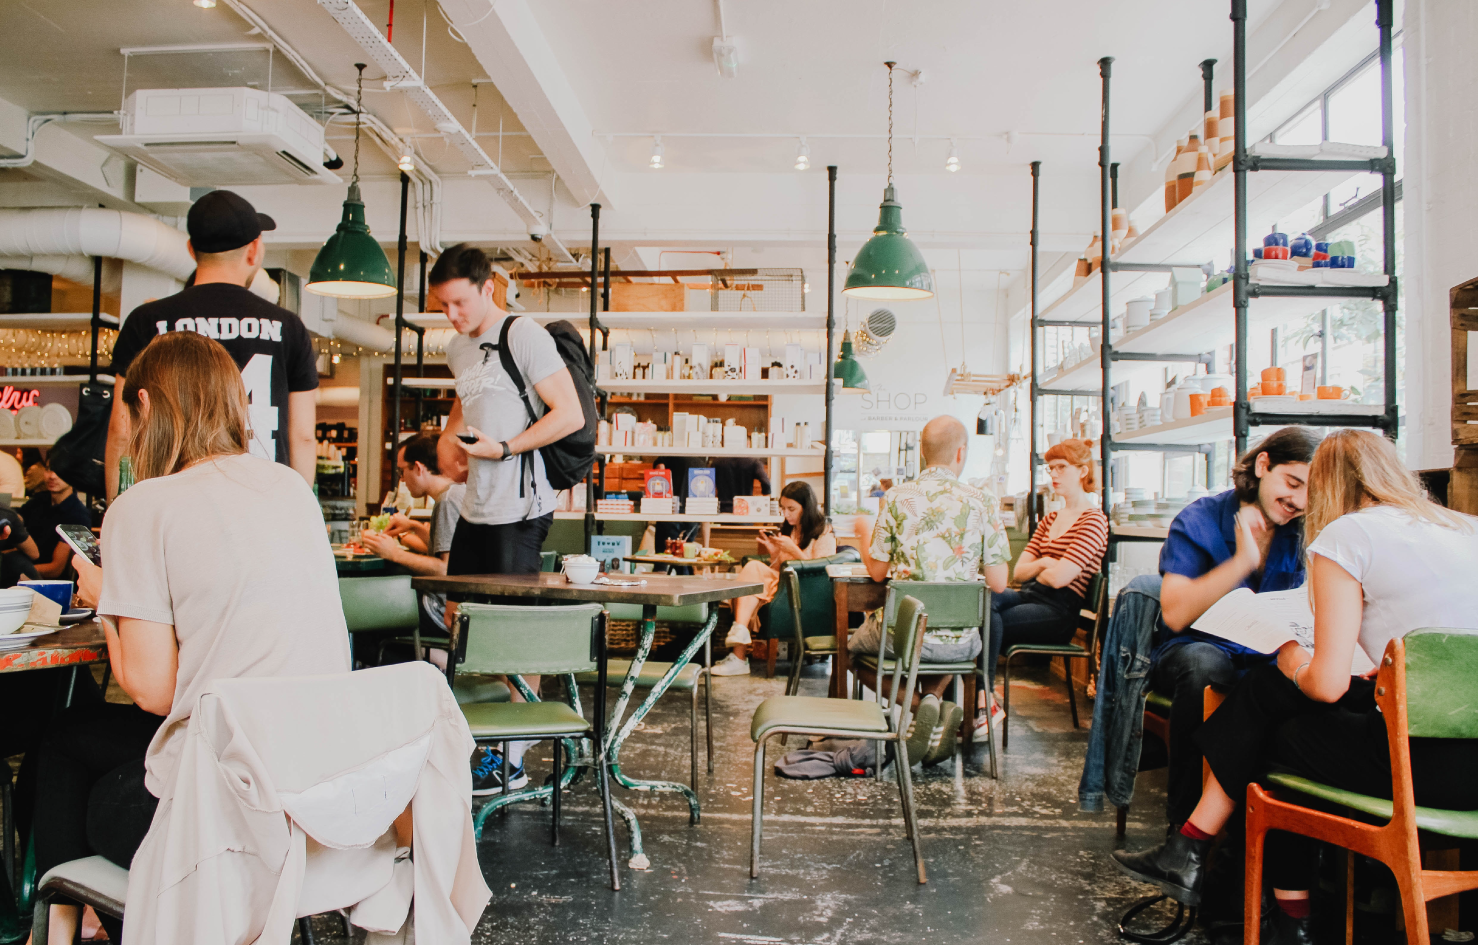 Location Marketing helps store operators bringing more foot traffic to the shops.